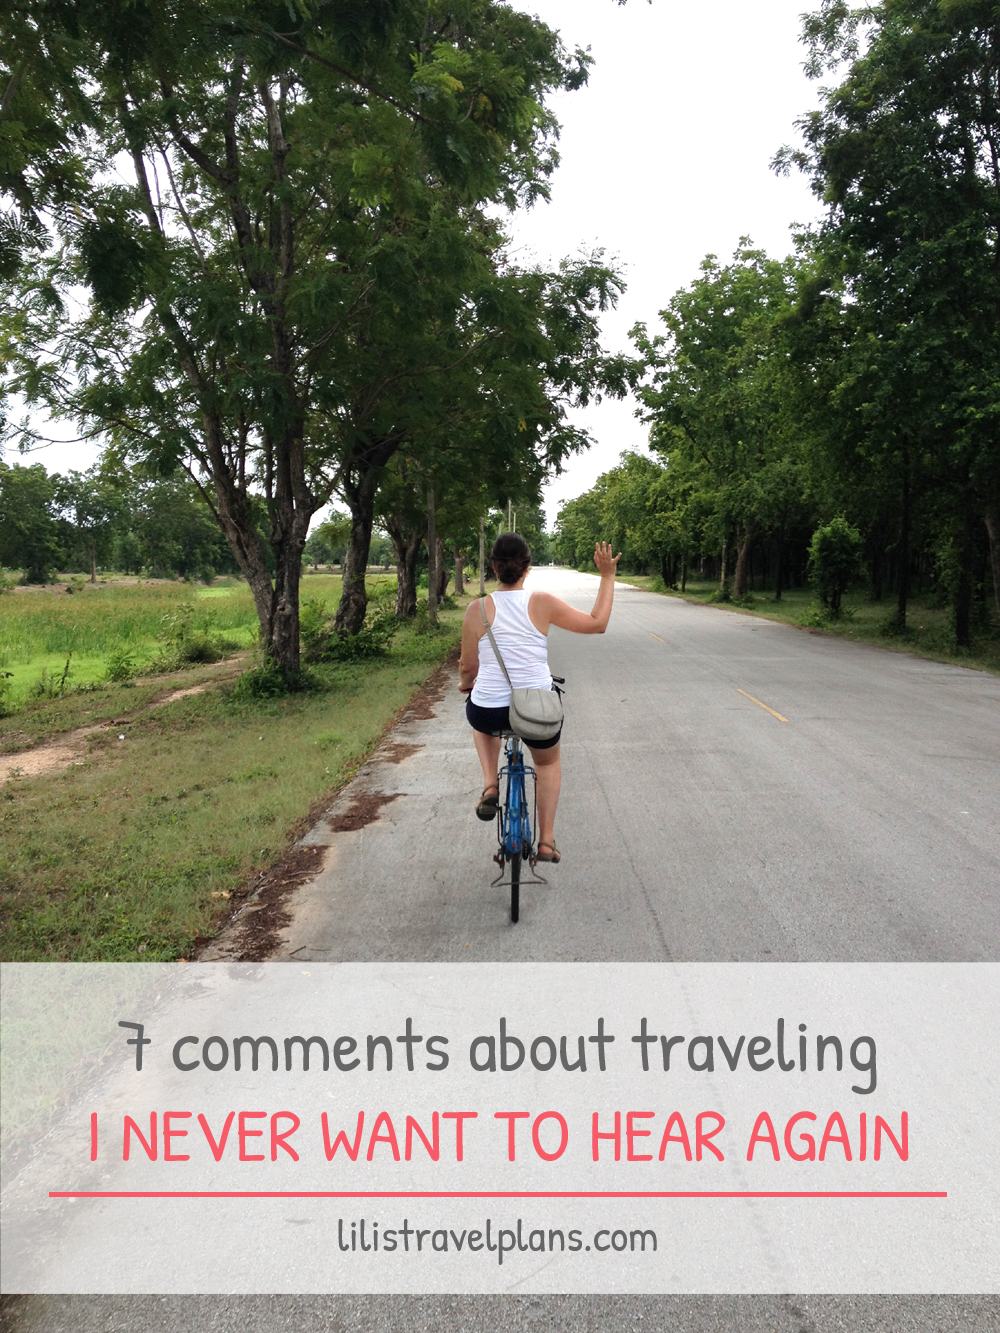 7 Comments about traveling I never want to hear again